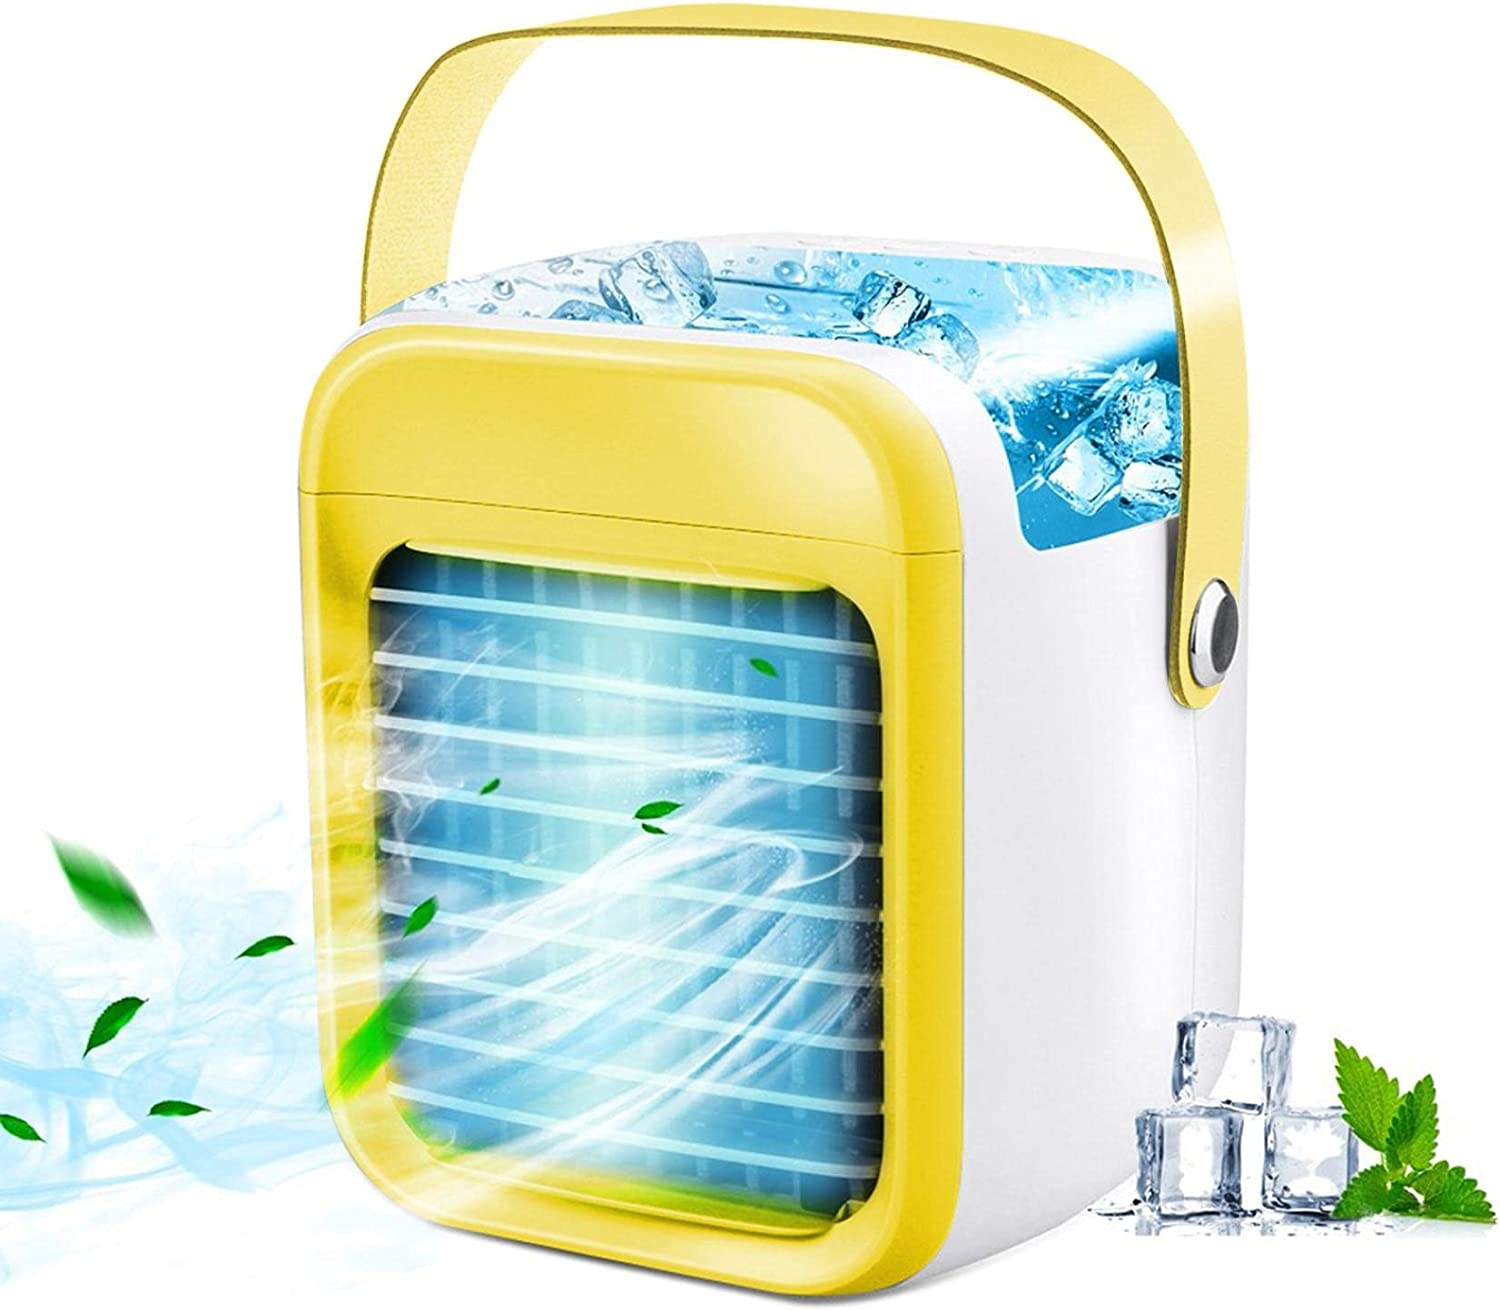 Portable Air Conditioner Anti Personal Leak Conditione Bombing Don't miss the campaign free shipping Mini